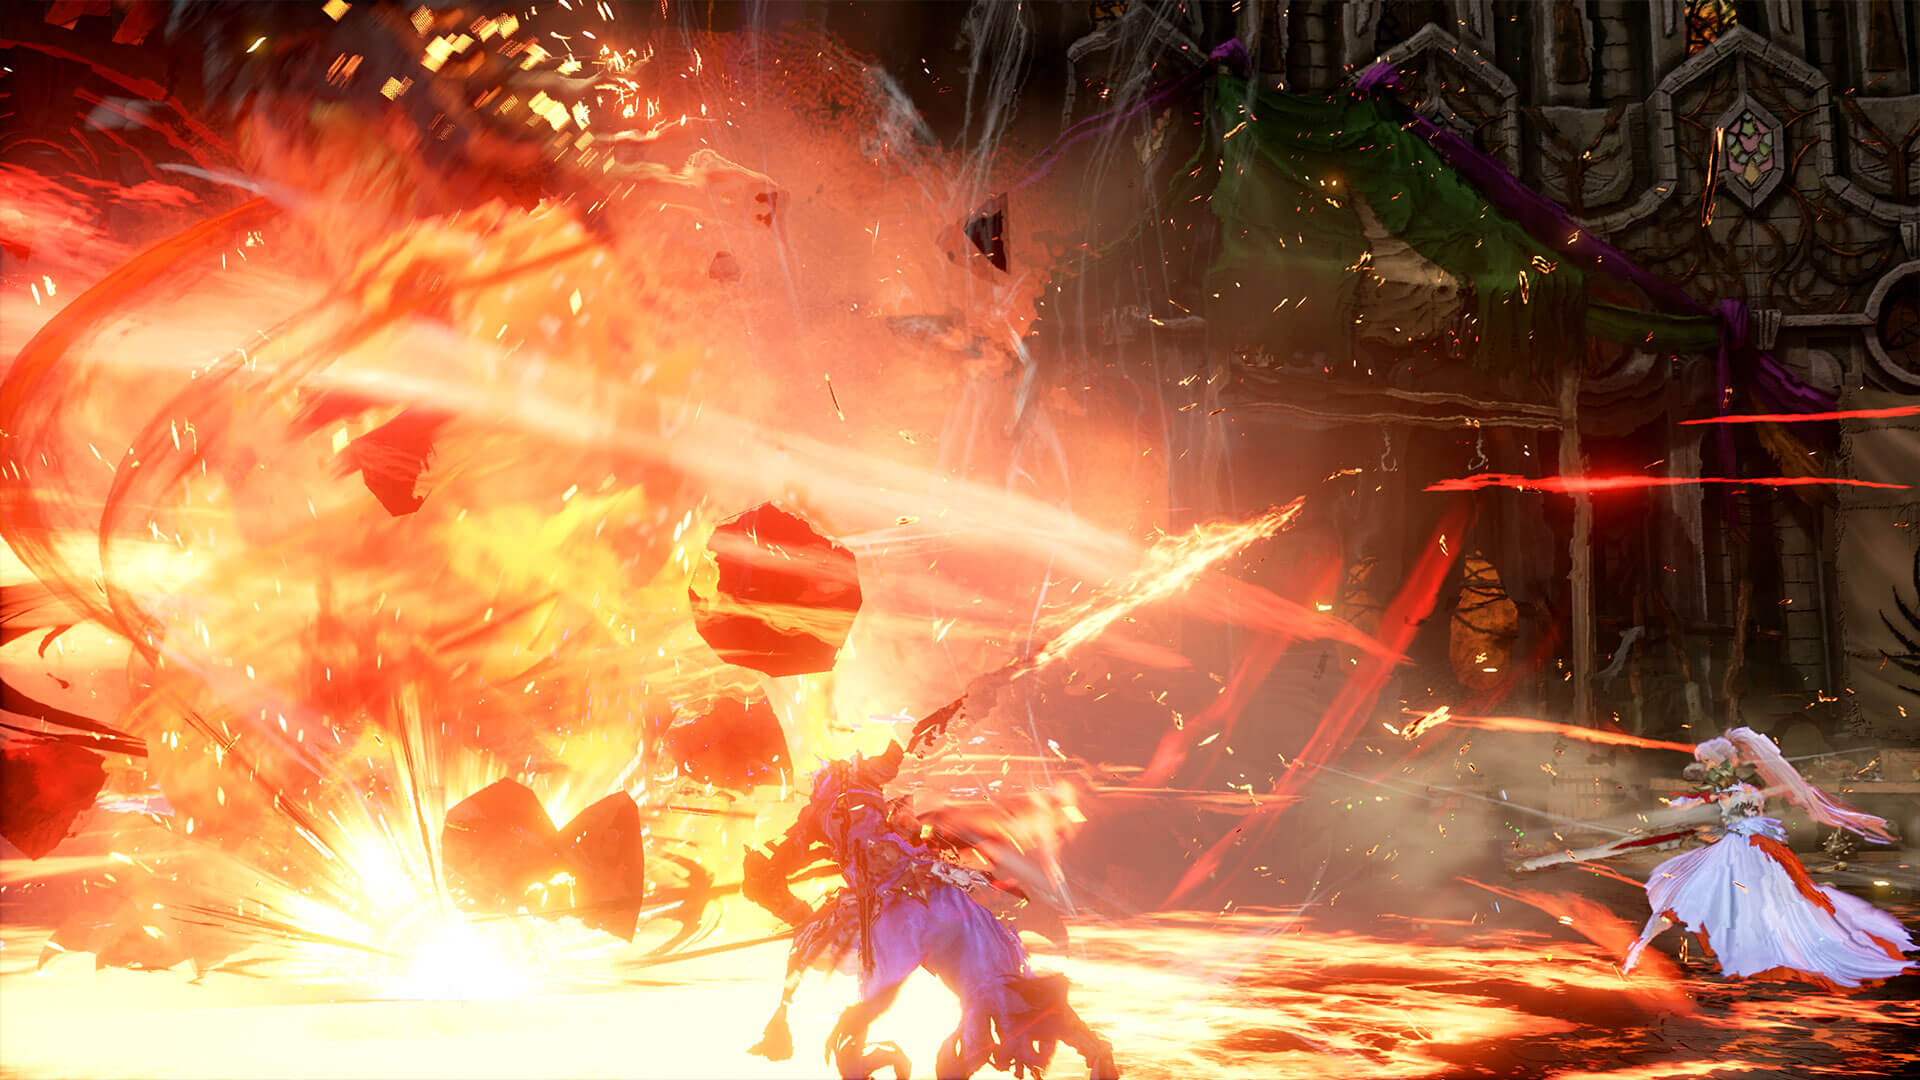 E3 2019: Tales of Arise Gameplay Details Have Leaked, Will Use